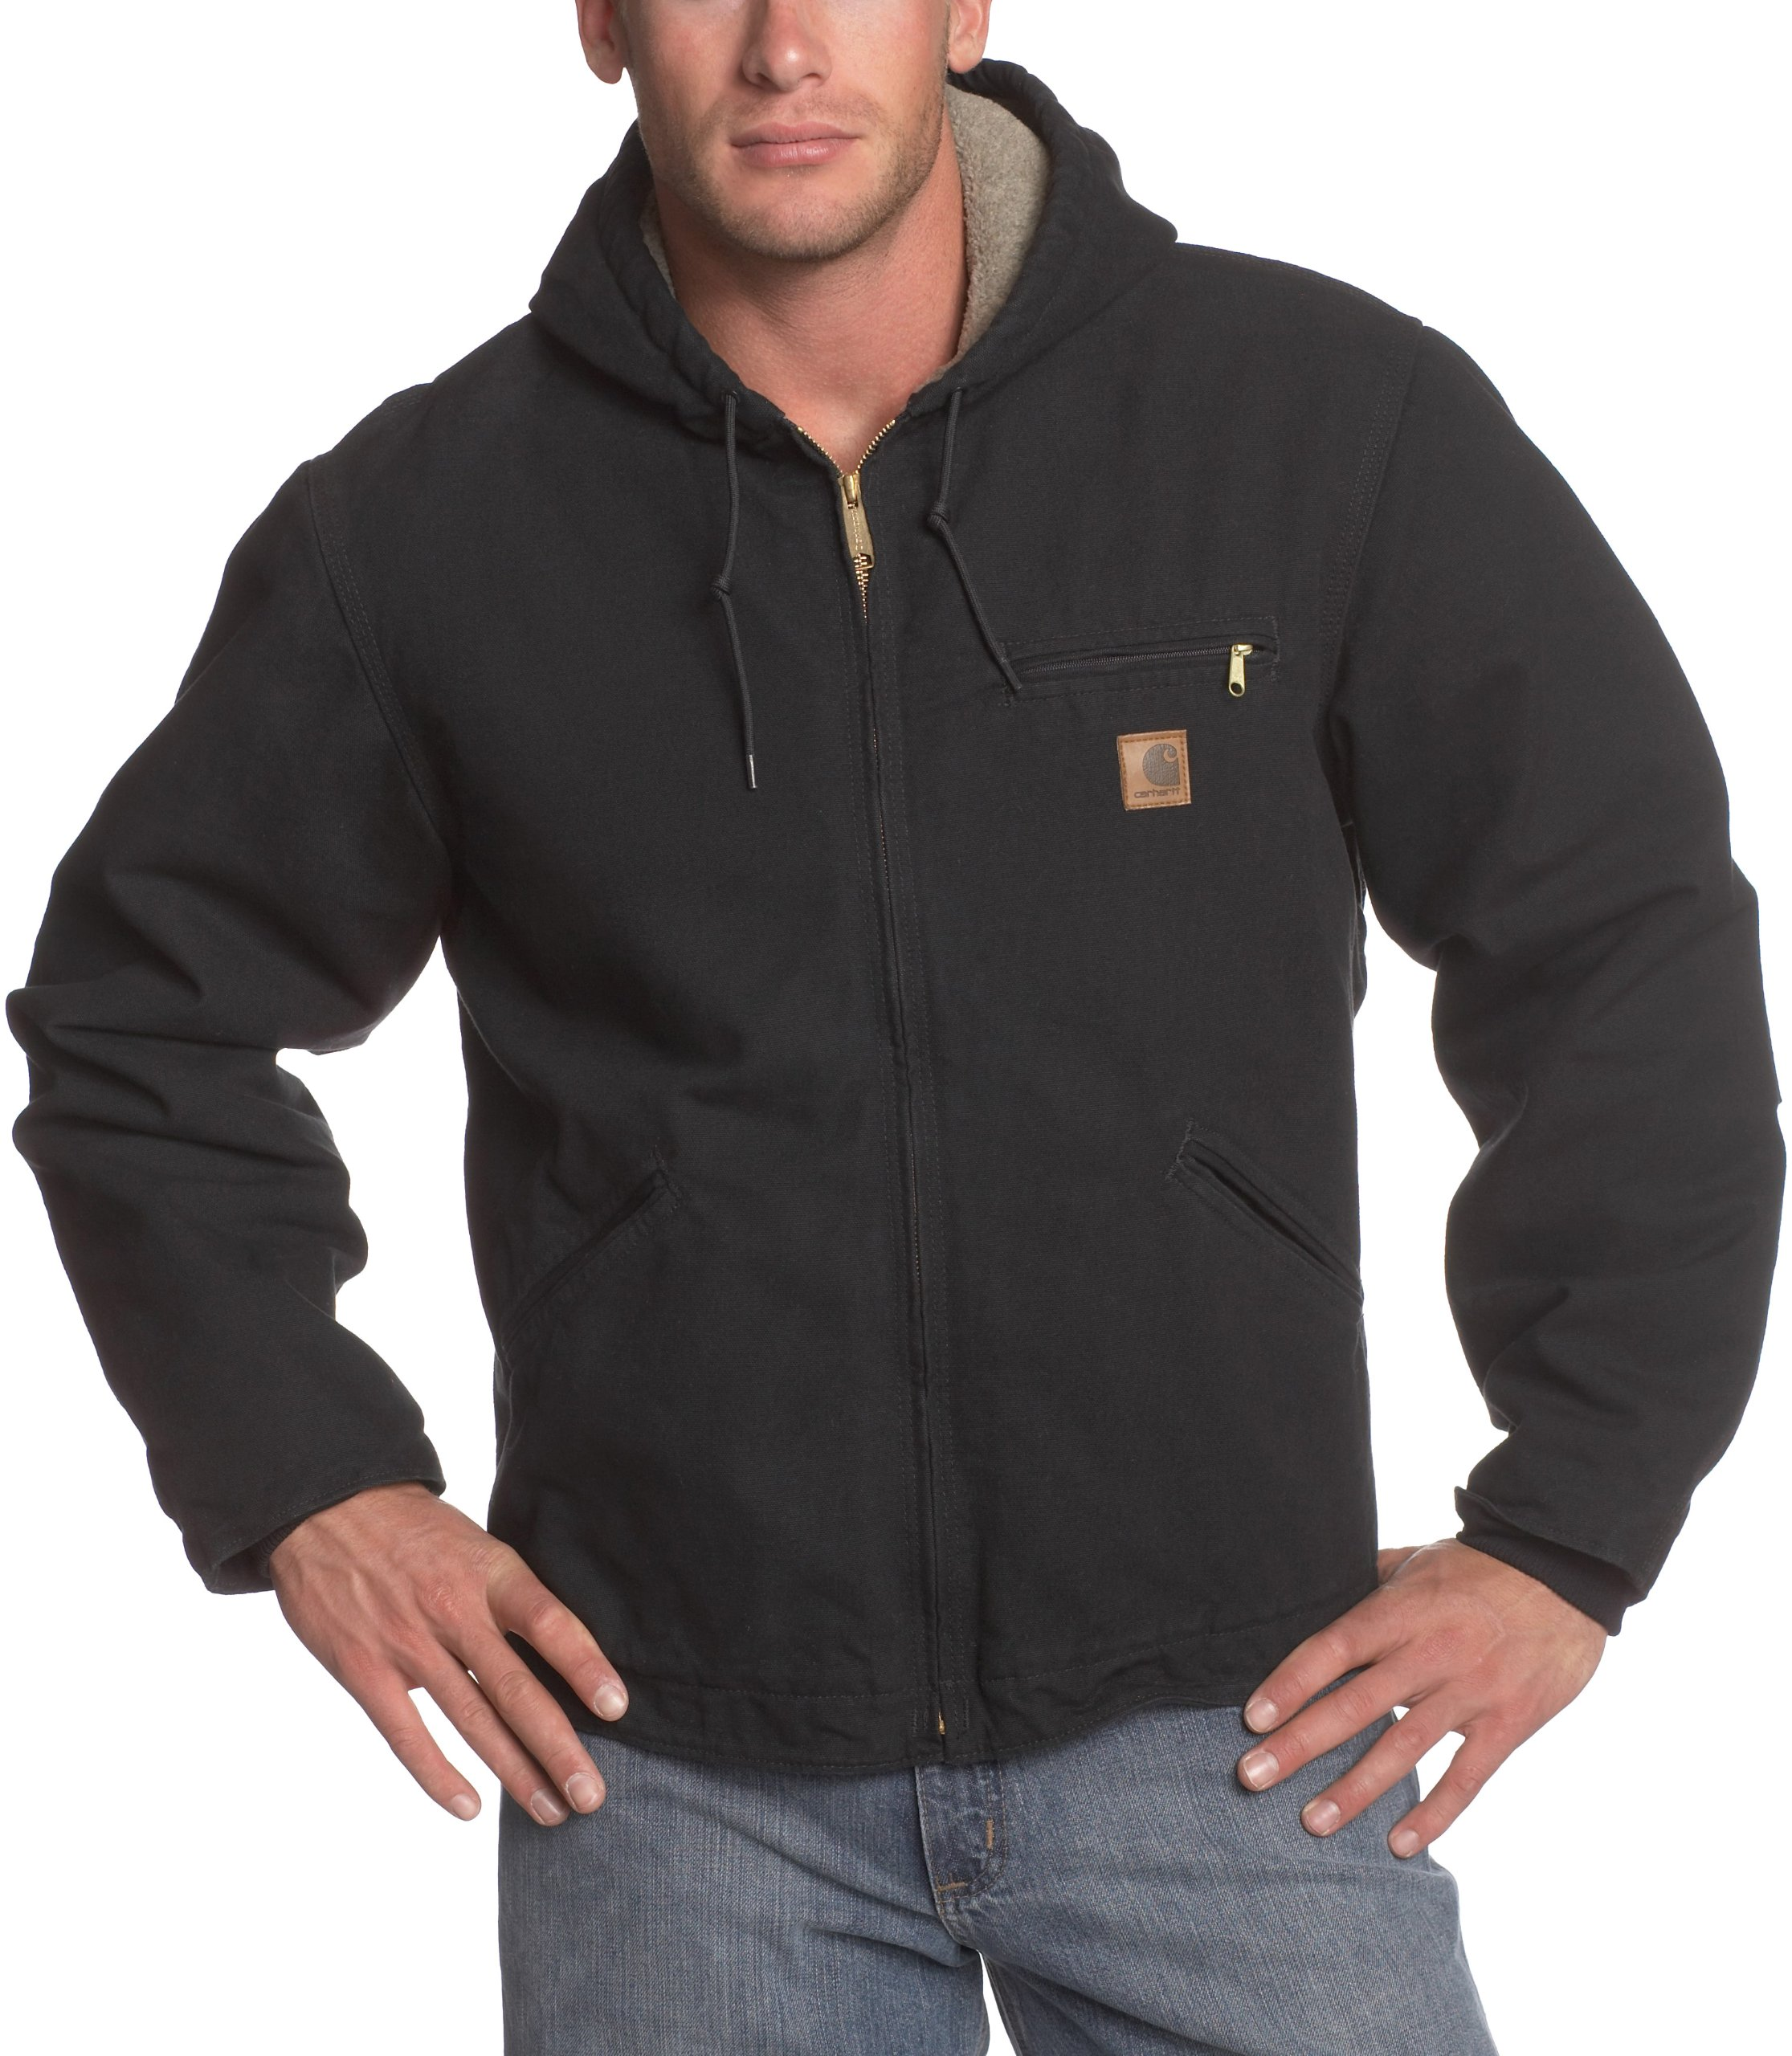 Carhartt Men's Big & Tall Sherpa Lined Sandstone Sierra Jacket J141,Black,XXX-Large